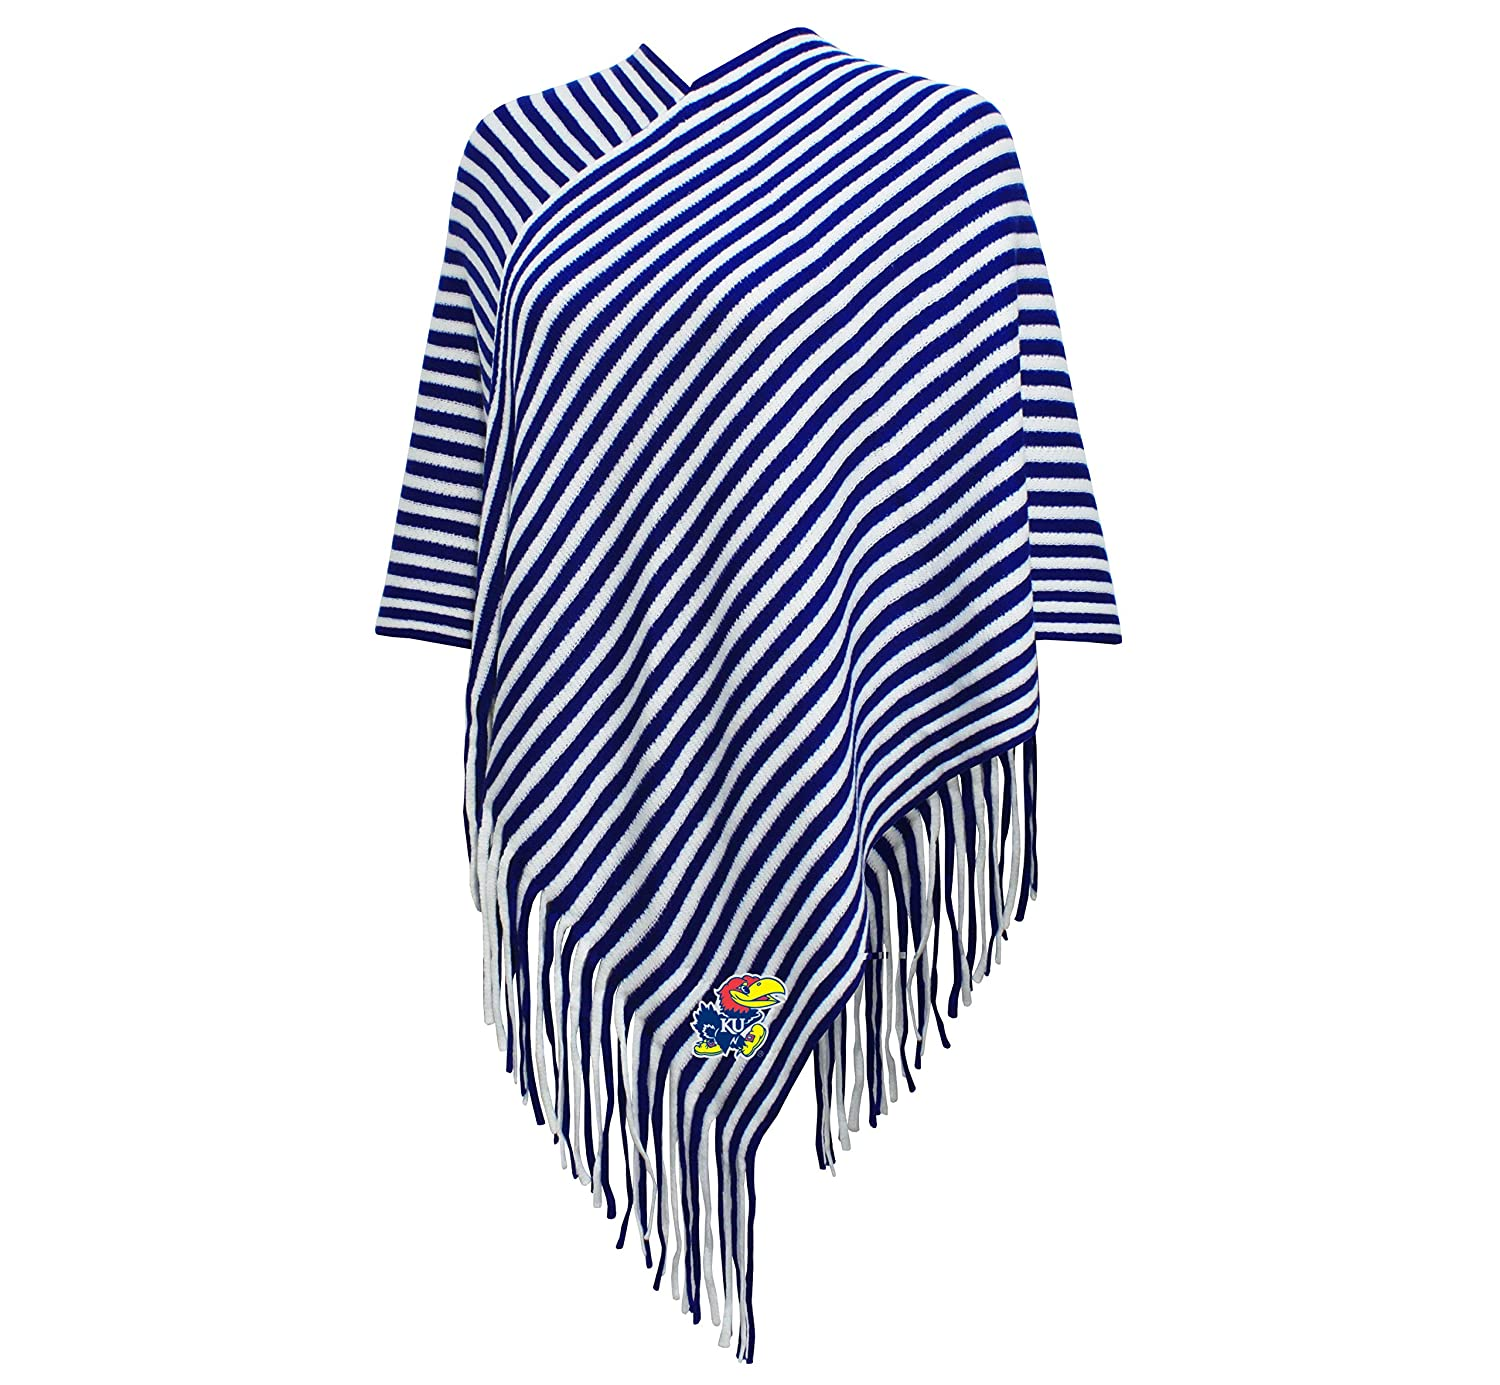 NCAA Womens NCAA Womens Campus Specialties Striped Team Poncho